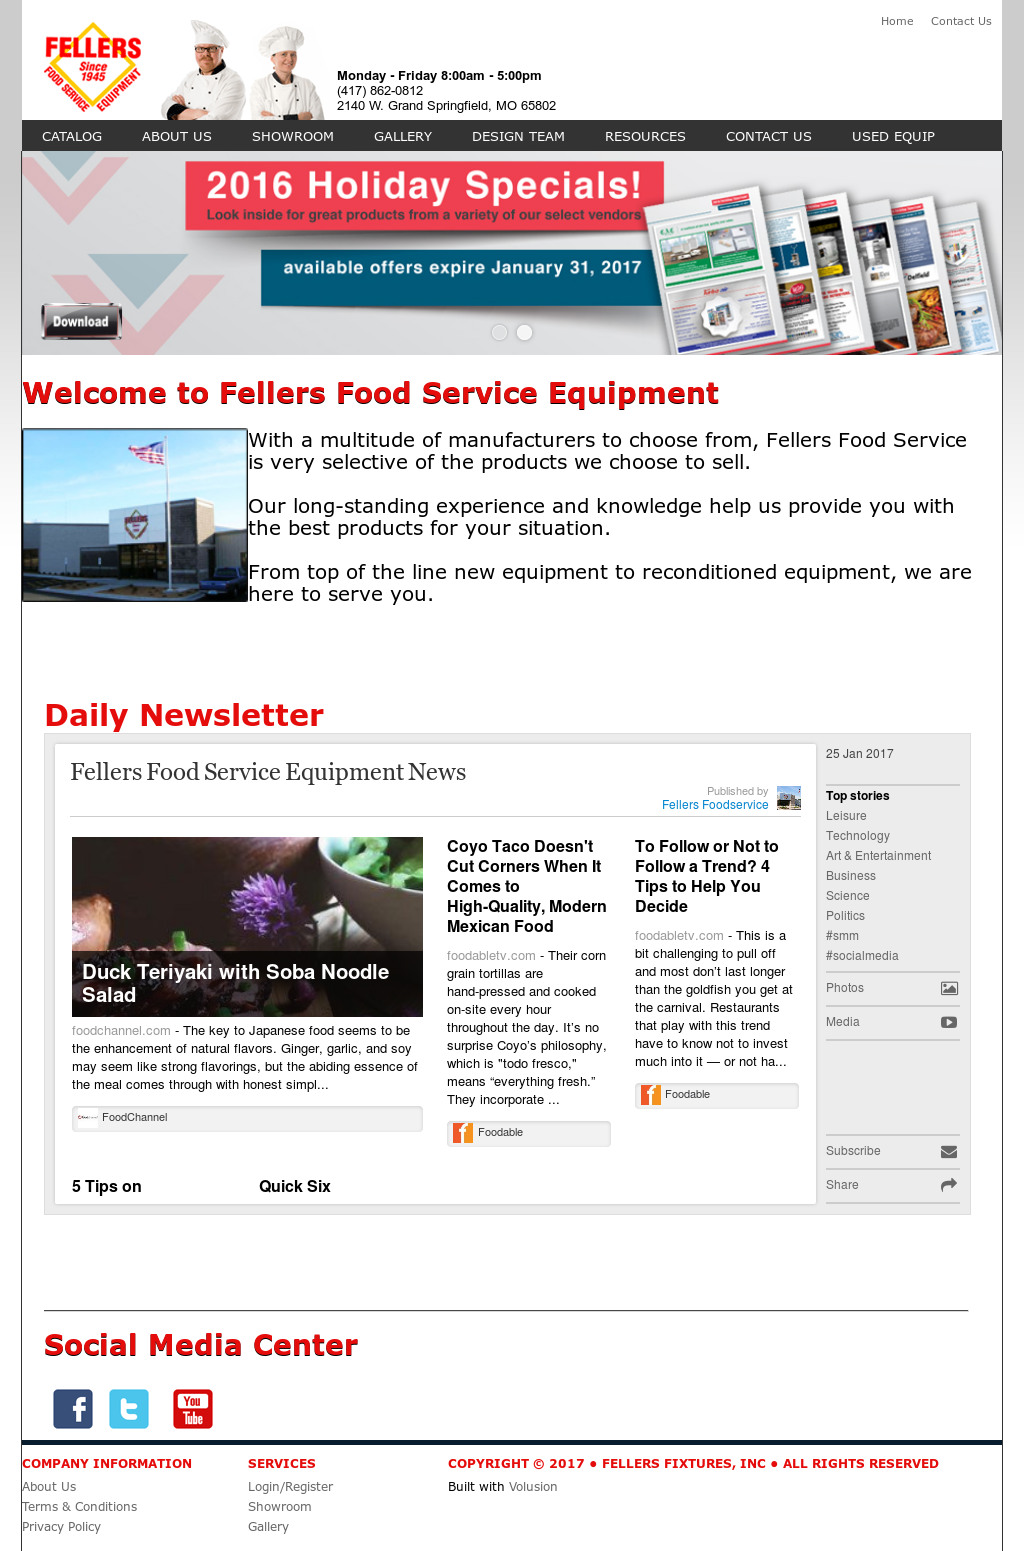 Fellers Fixtures Competitors, Revenue and Employees - Owler Company